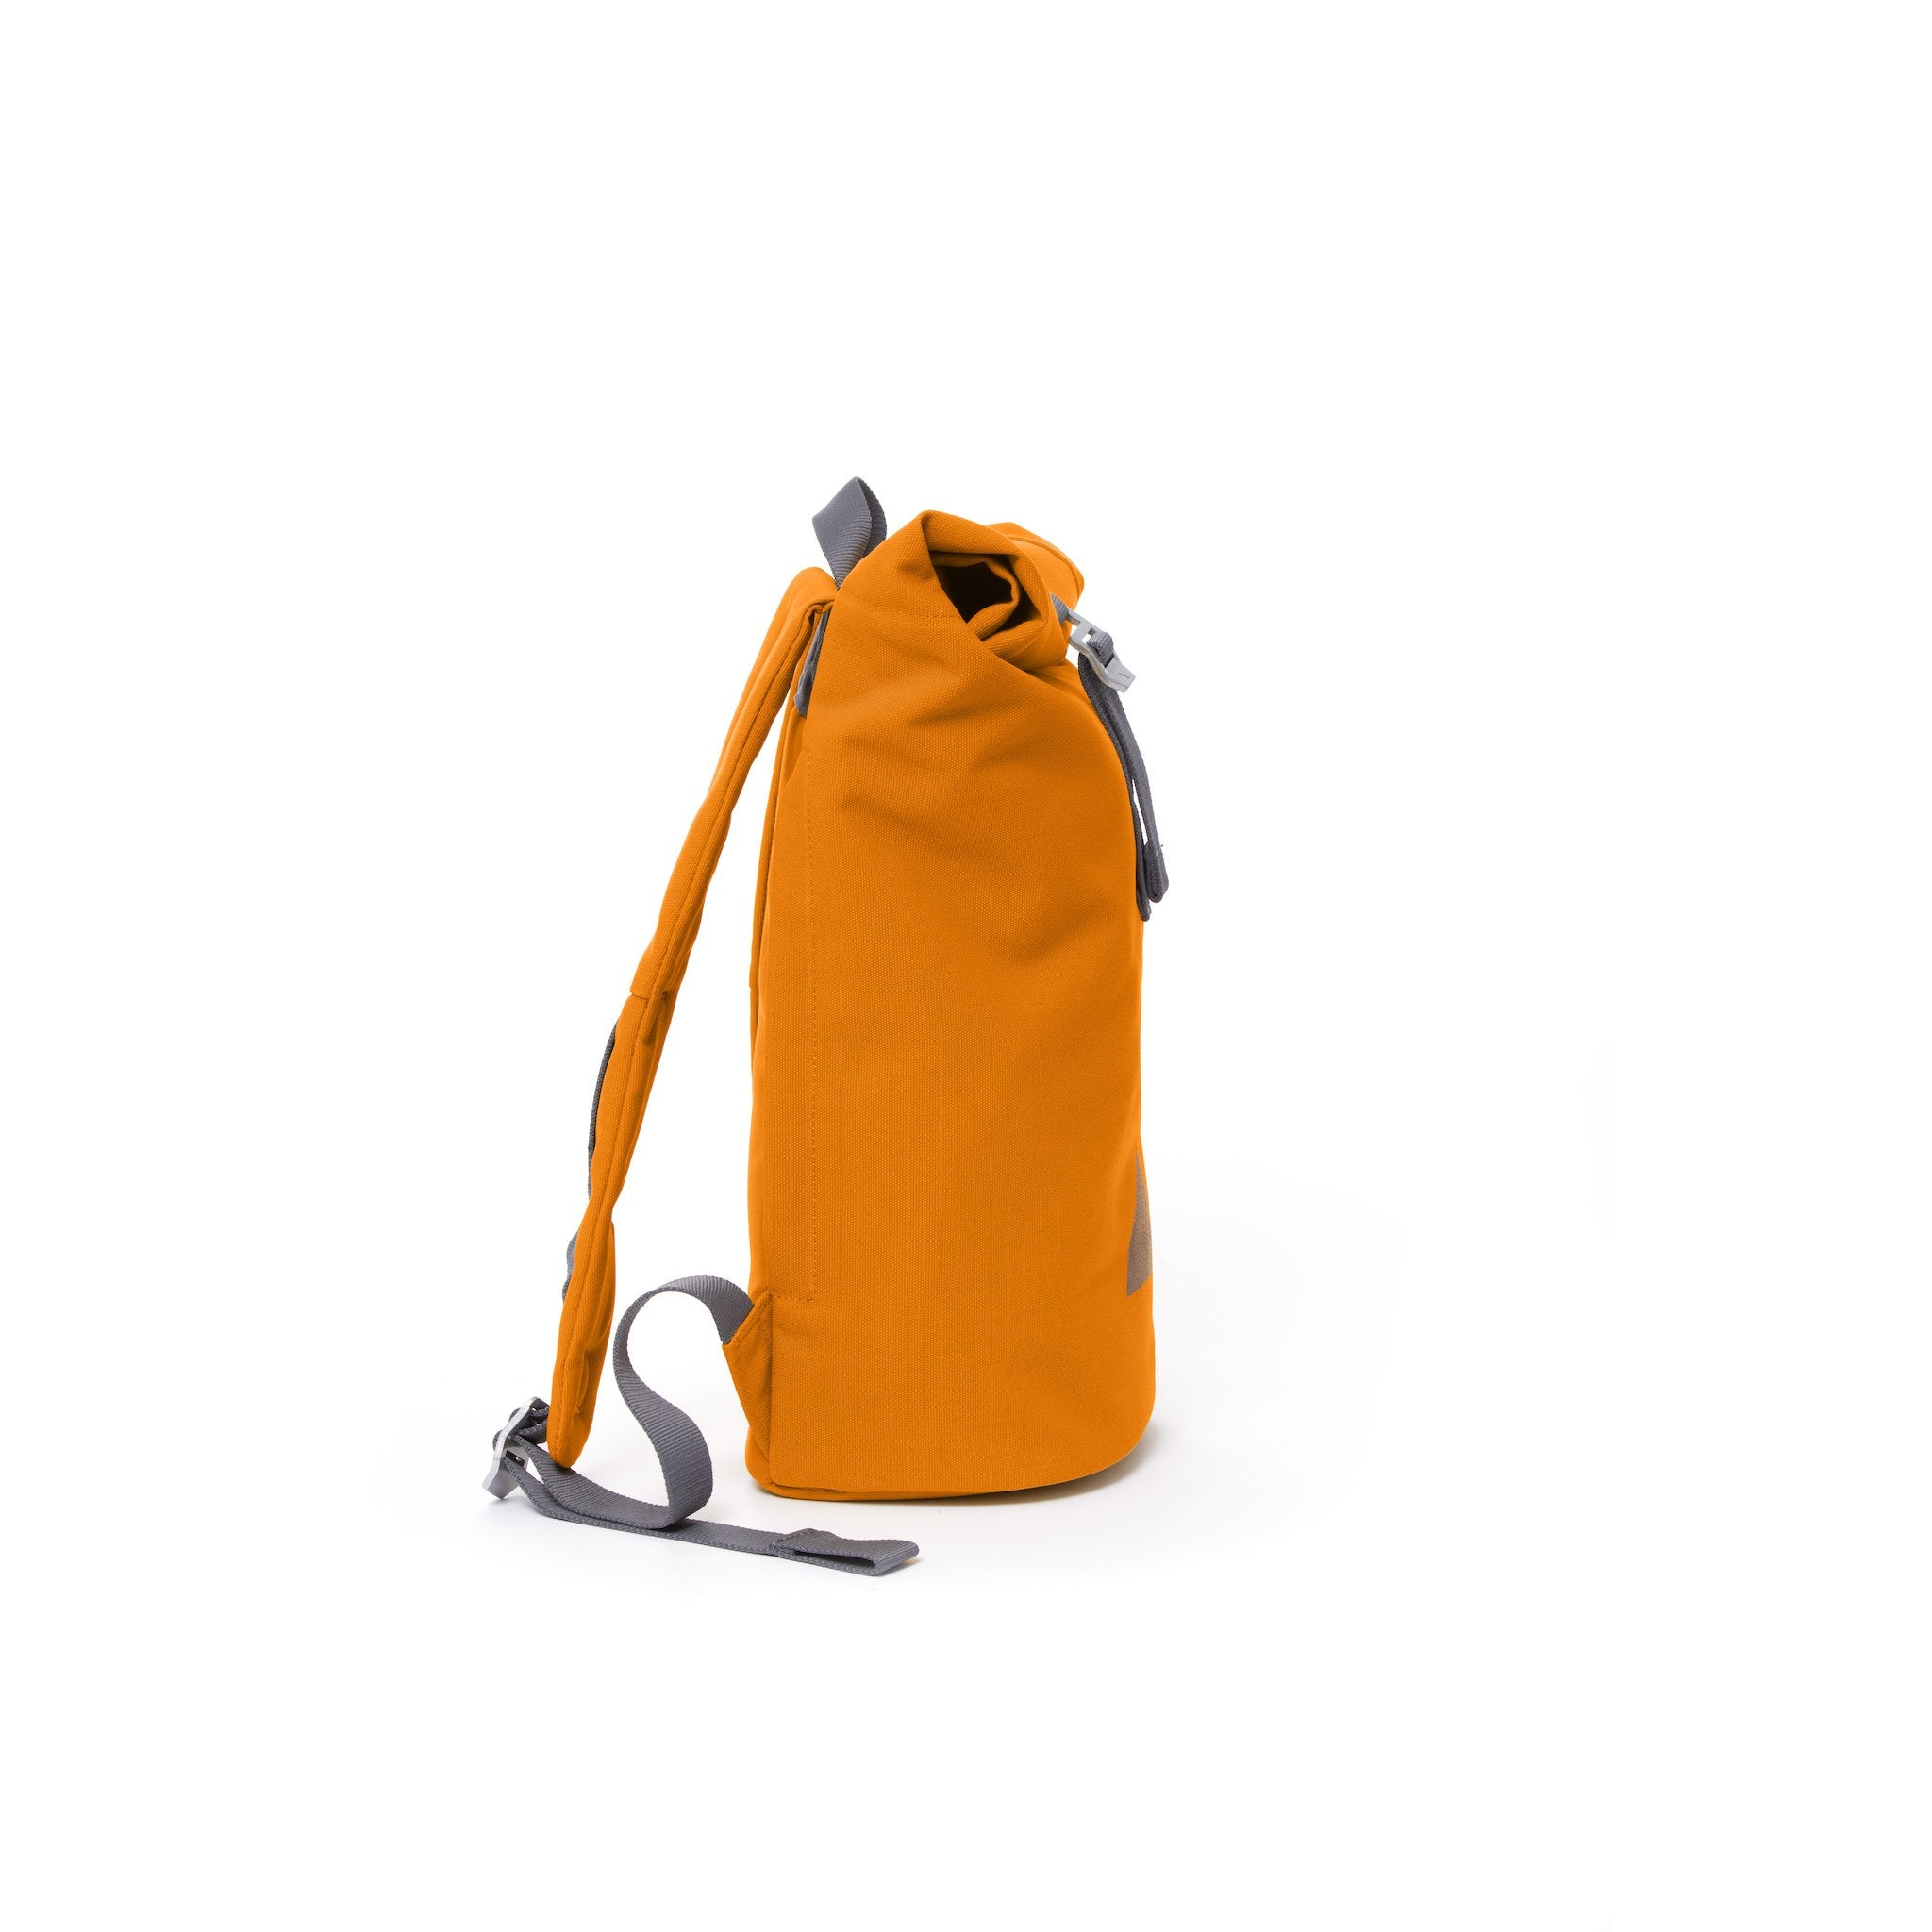 Orange waterproof canvas women's rolltop backpack.